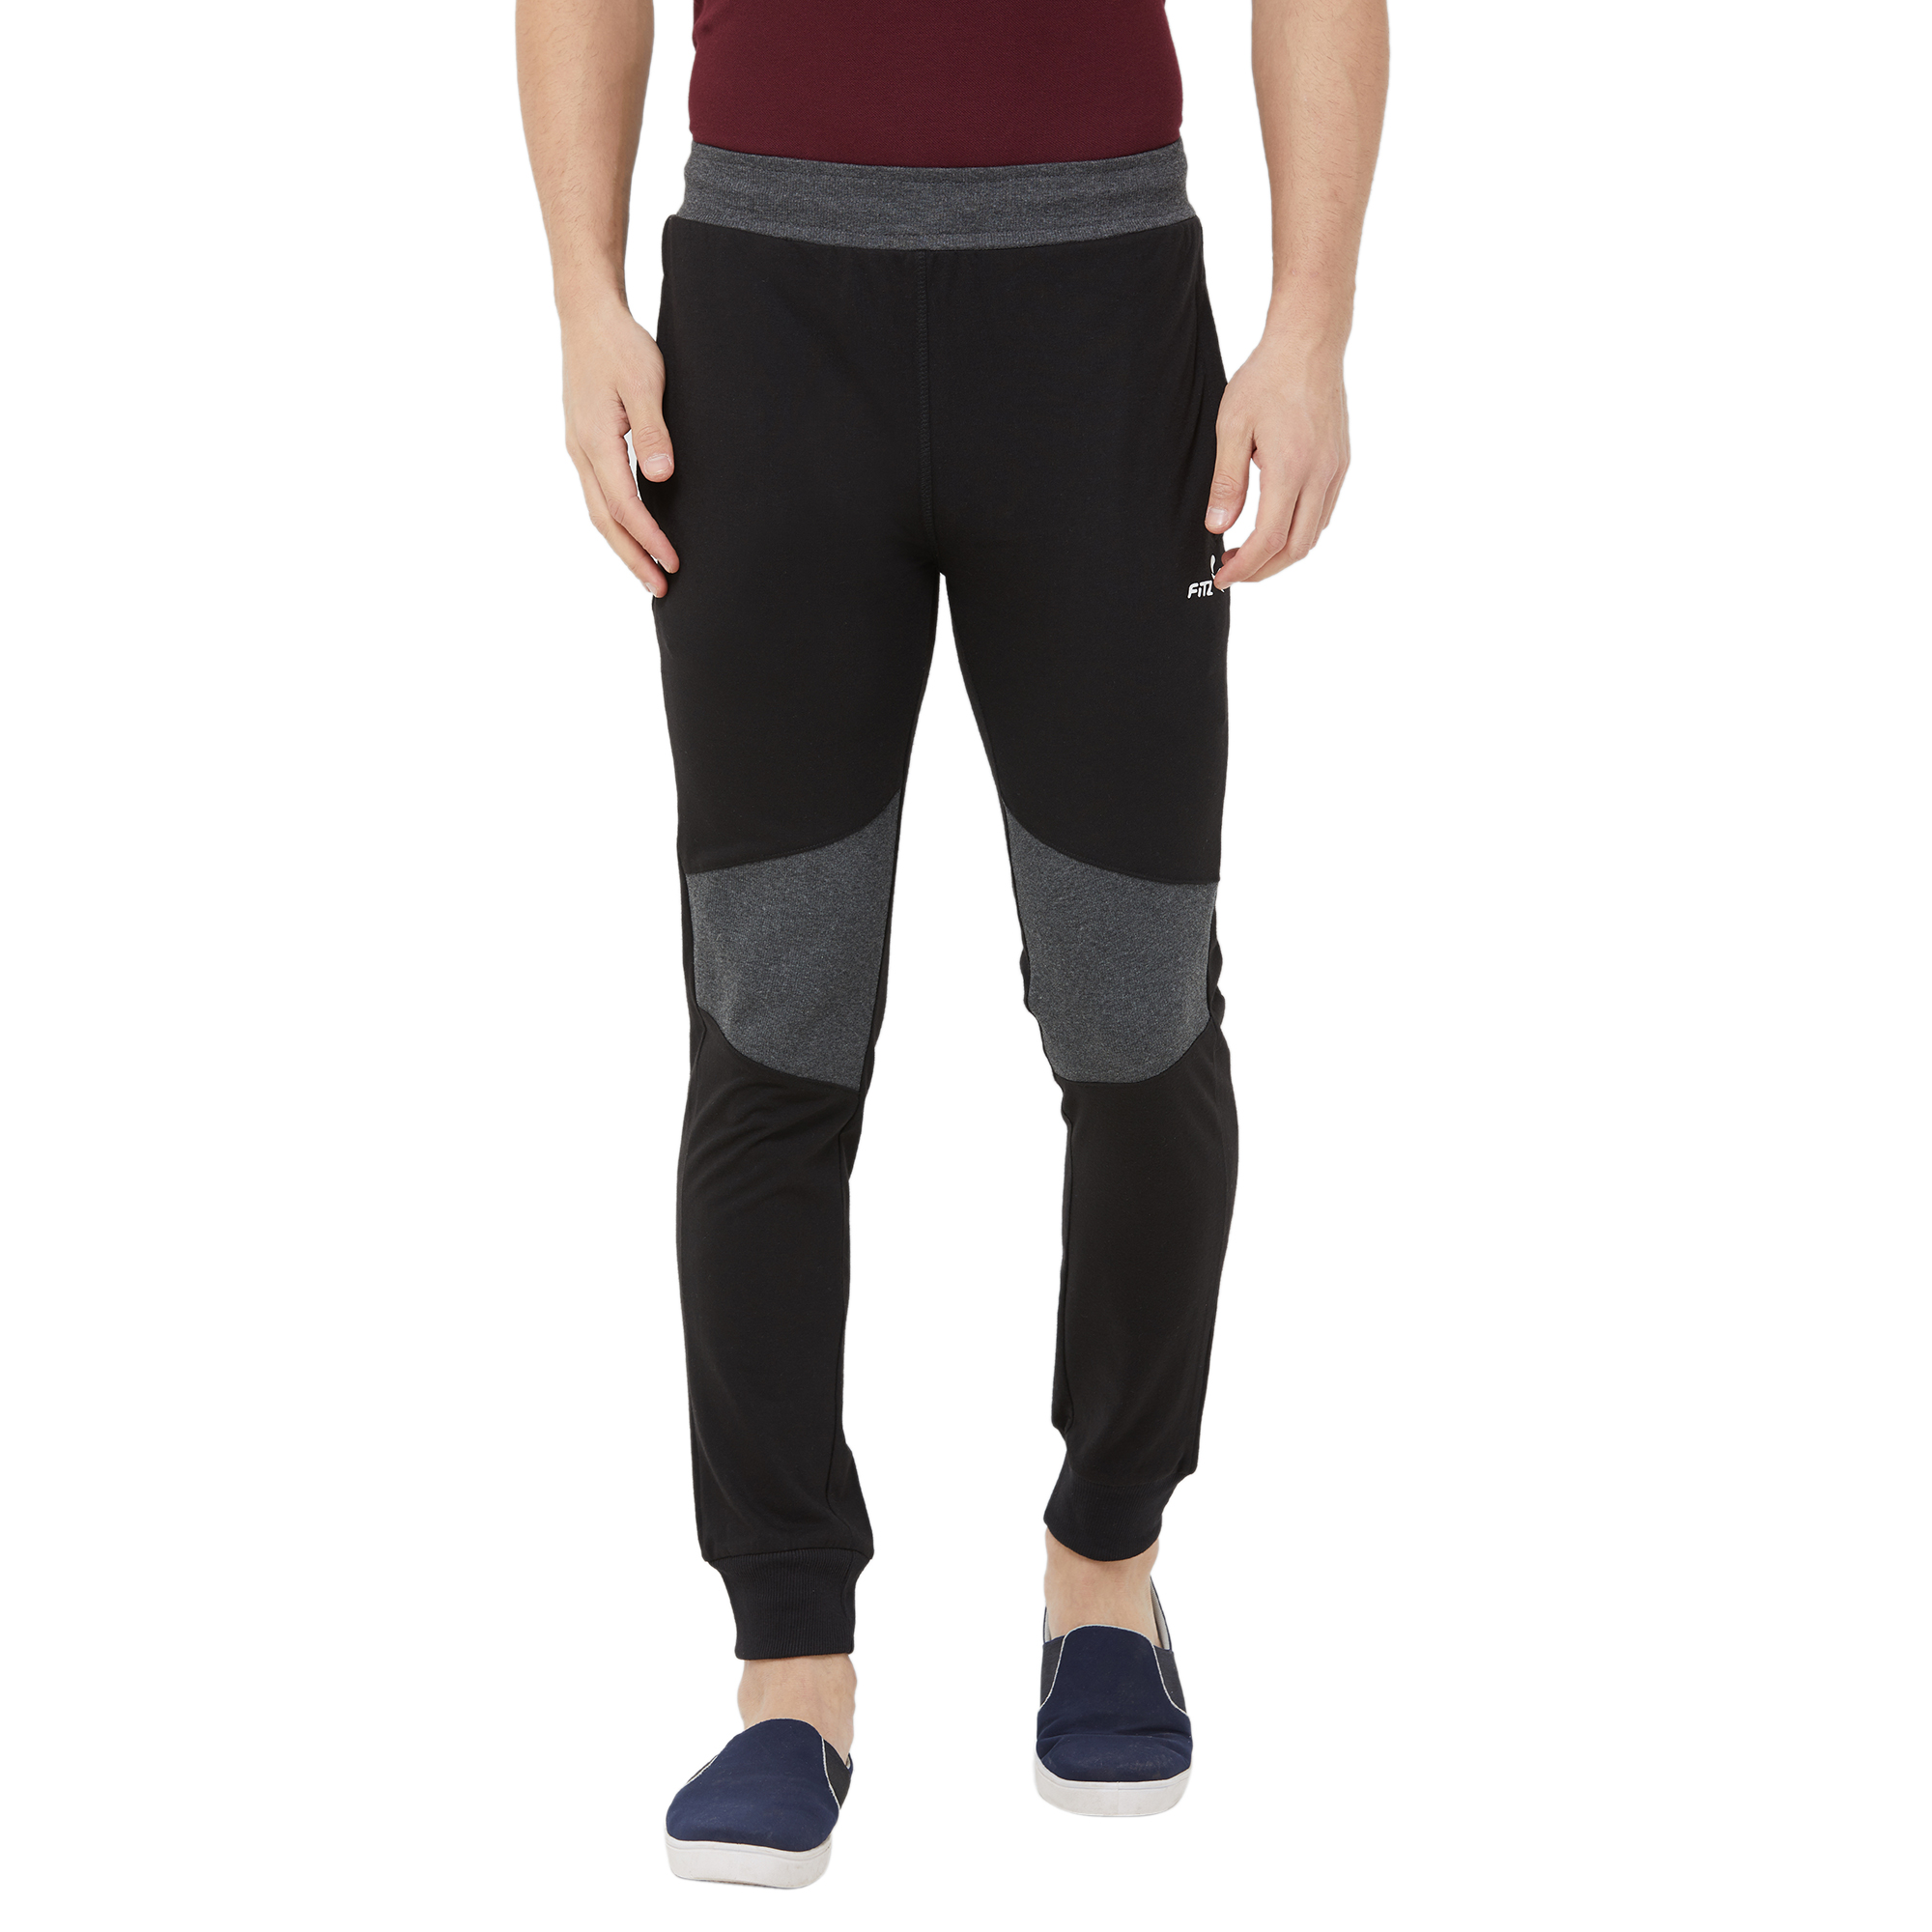 FITZ   Fitz  Cotton Black Loungewear Joggers Track For Mens